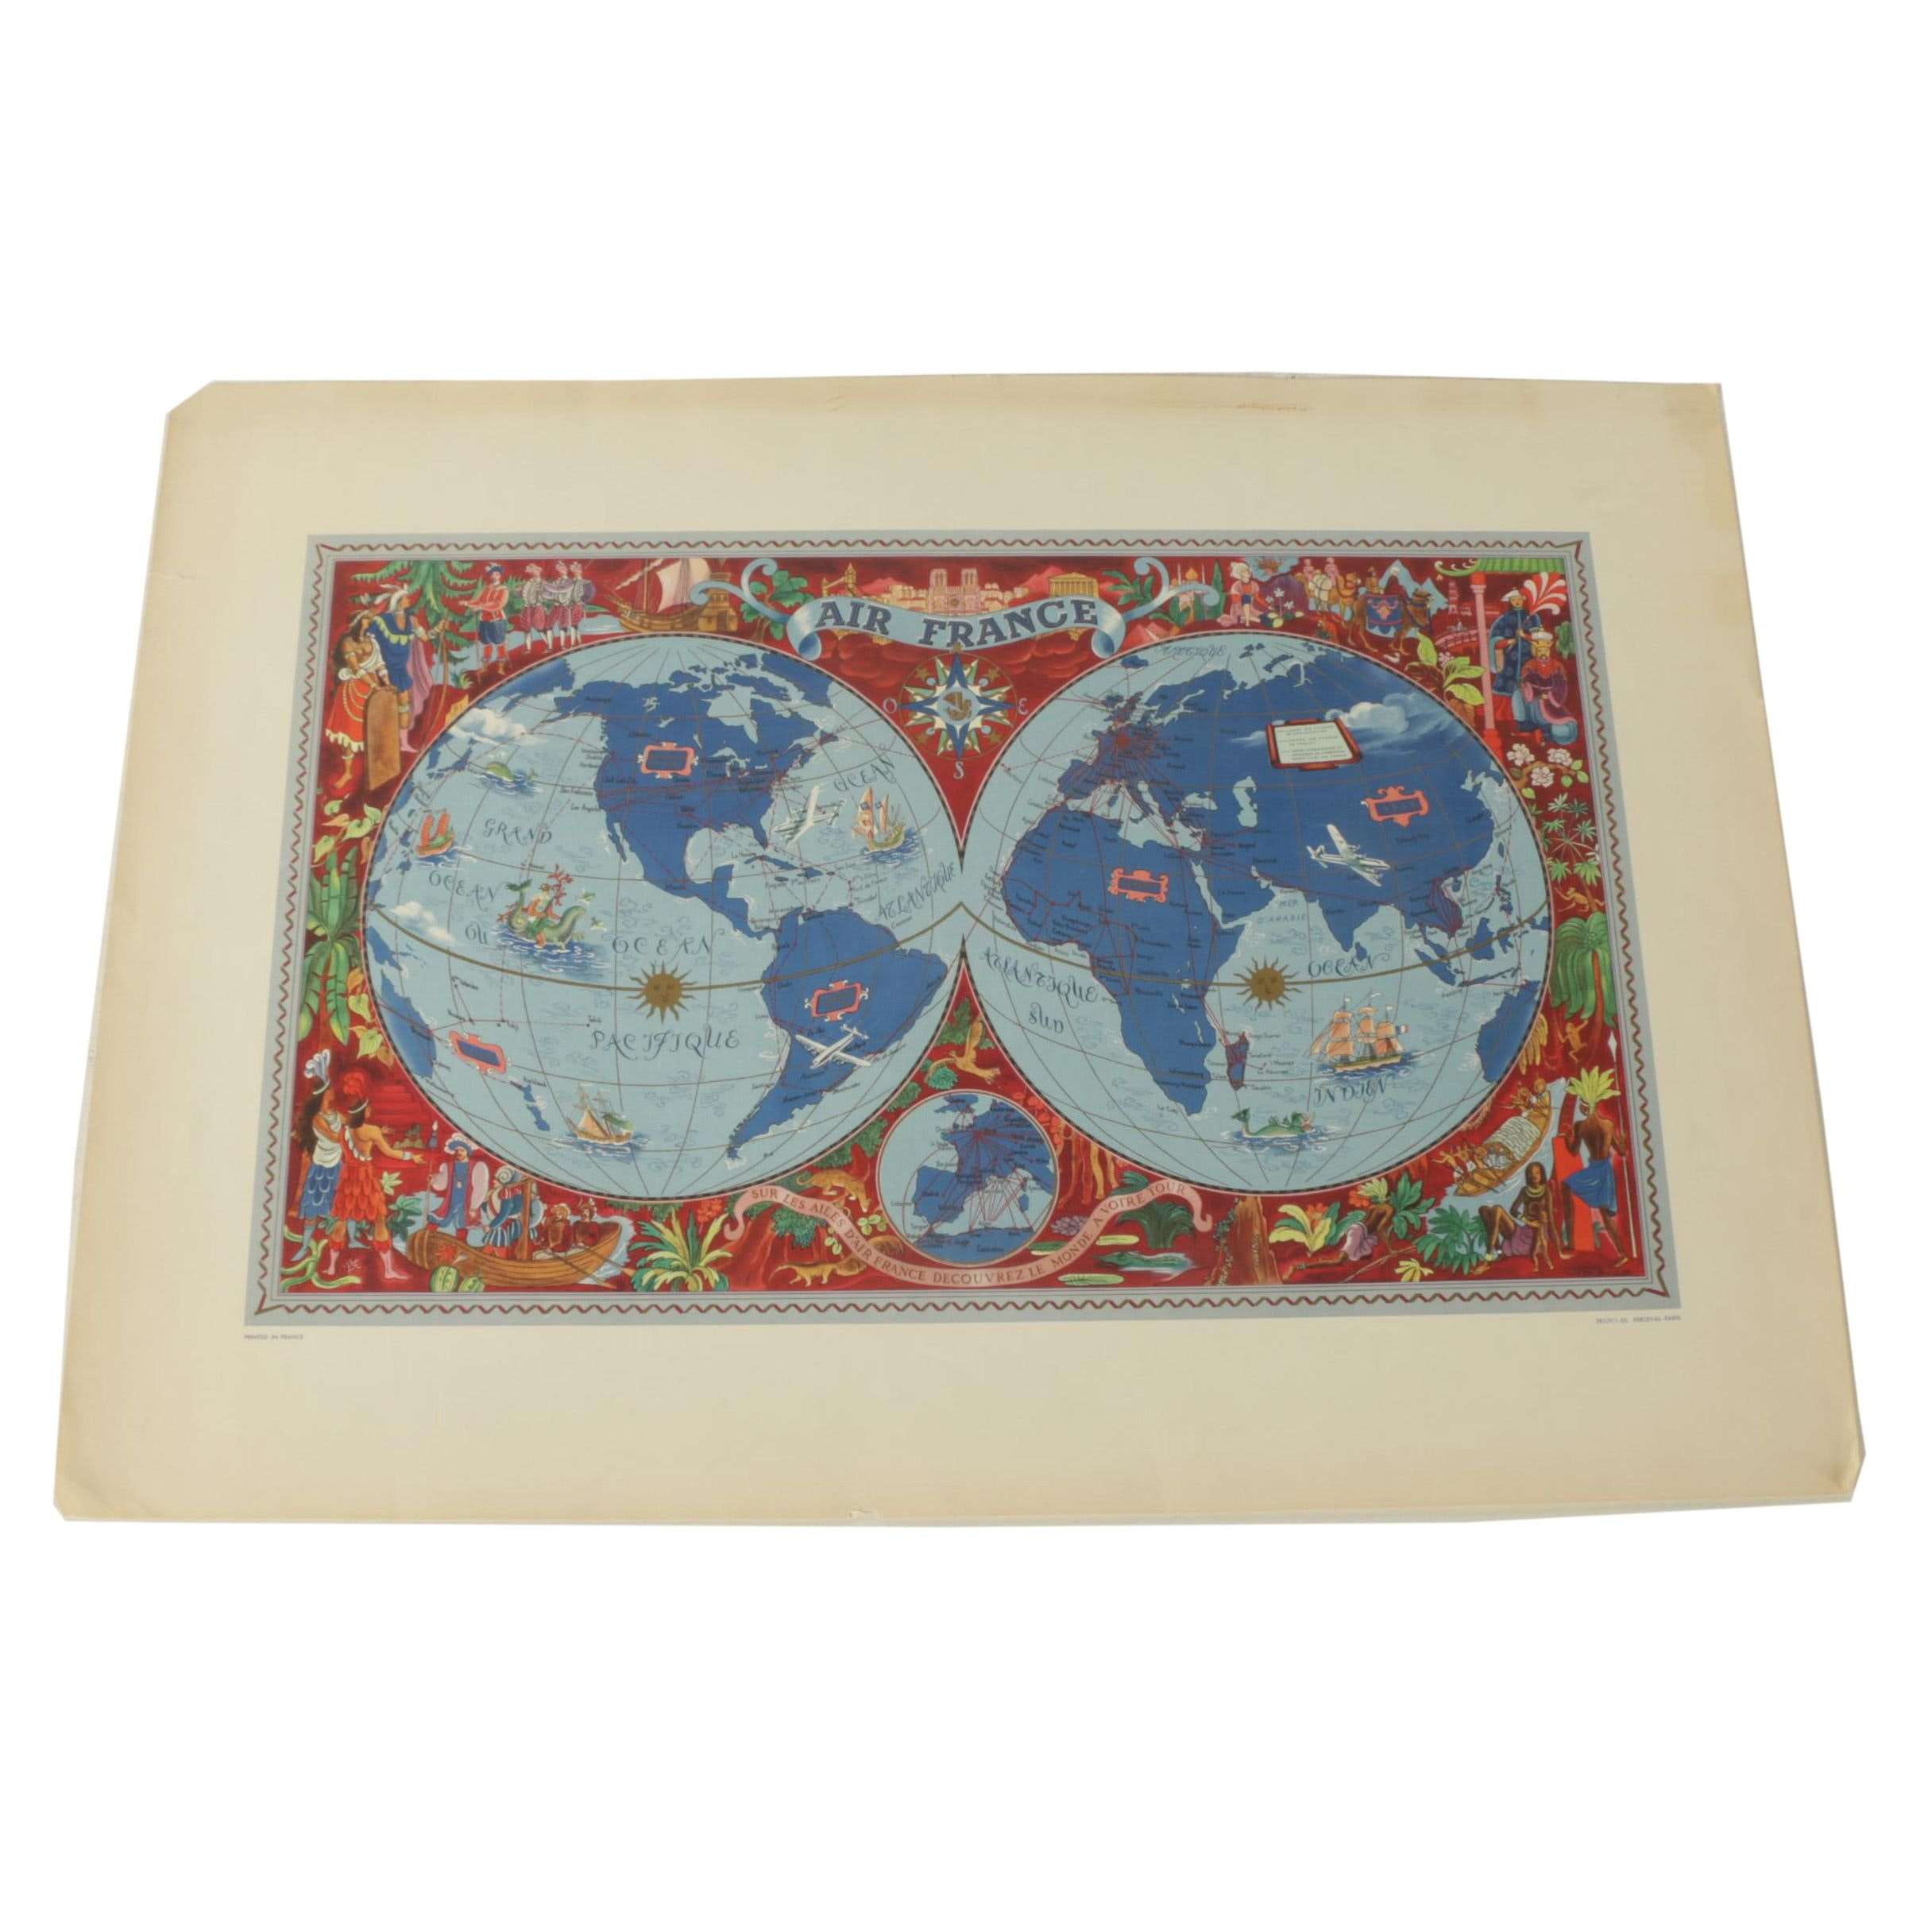 "Reproduction Print after Lucien Boucher ""Air France"" Map"